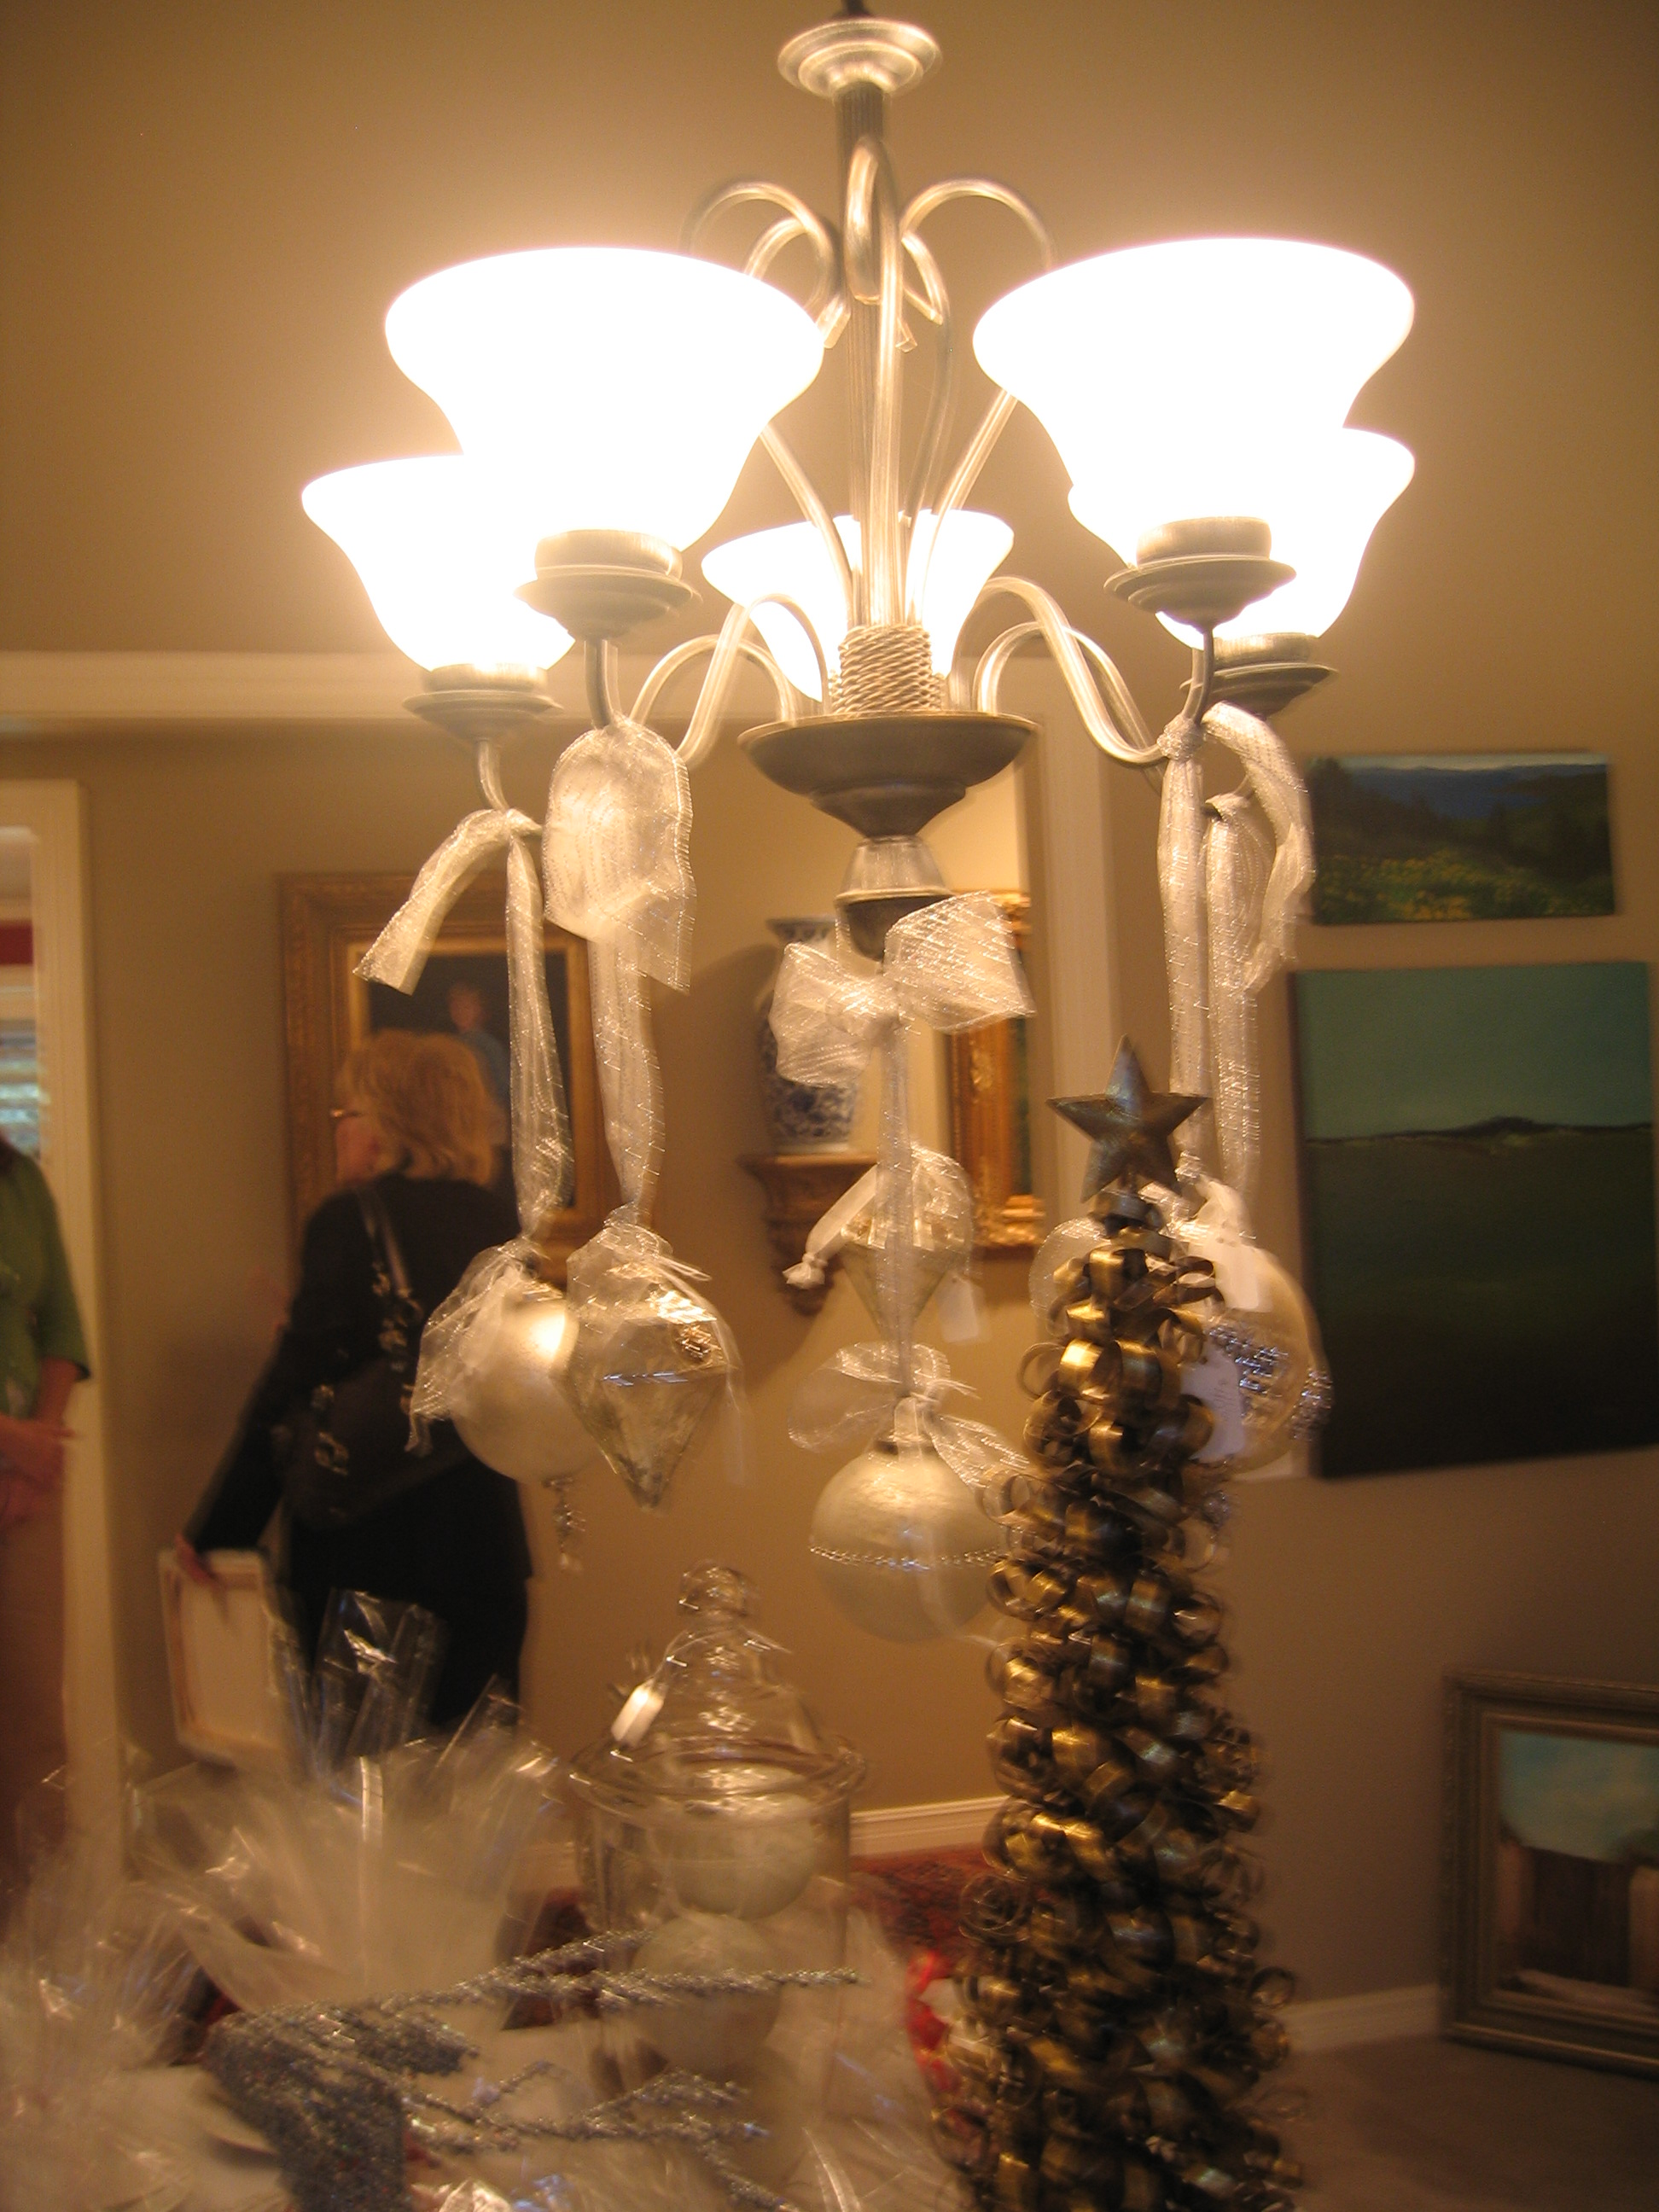 Love the ornaments added to the chandelier.